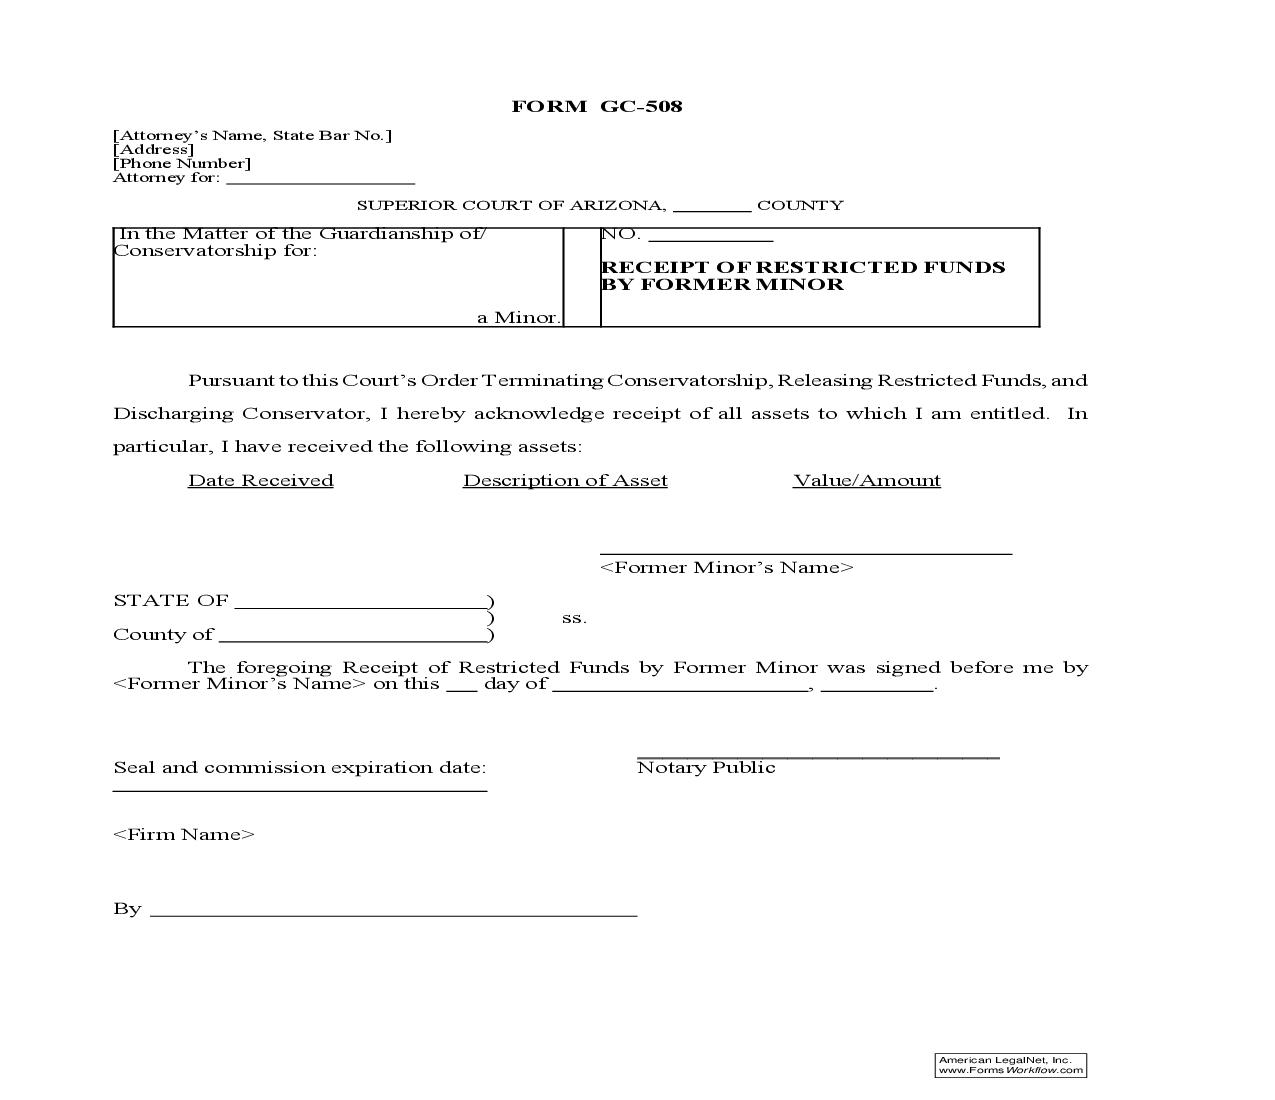 Receipt Of Restricted Funds By Former Minor {GC-508}   Pdf Doc Docx   GTLaw